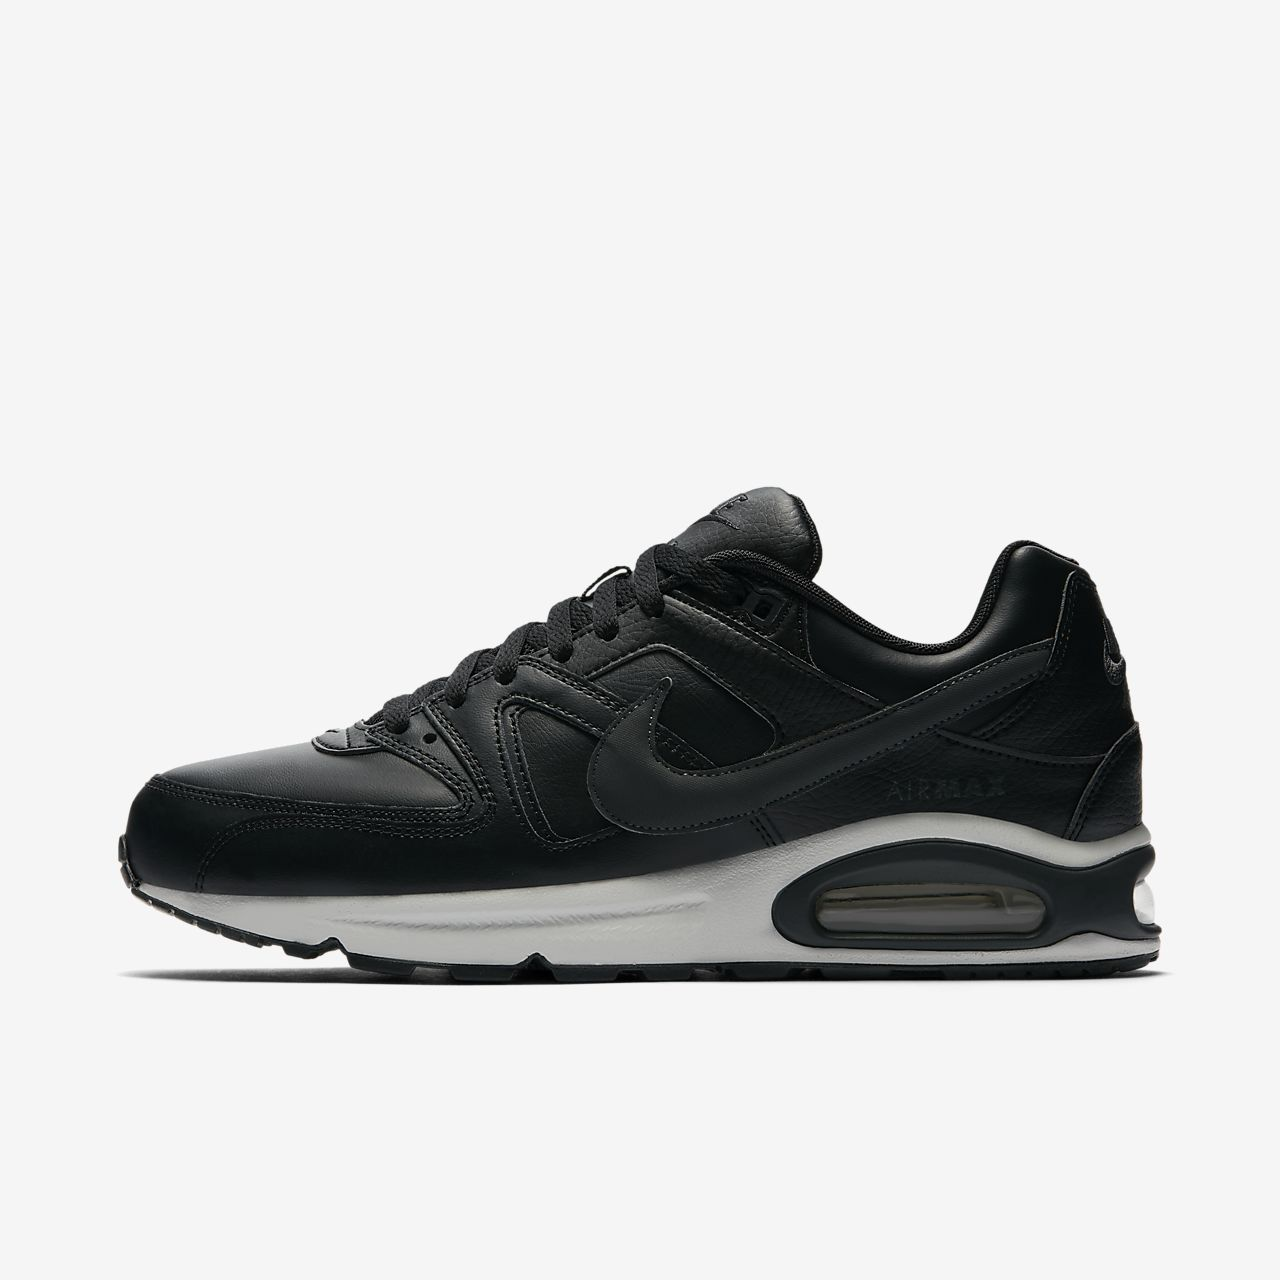 hot sale online 51acf ed64e Buty męskie Nike Air Max Command